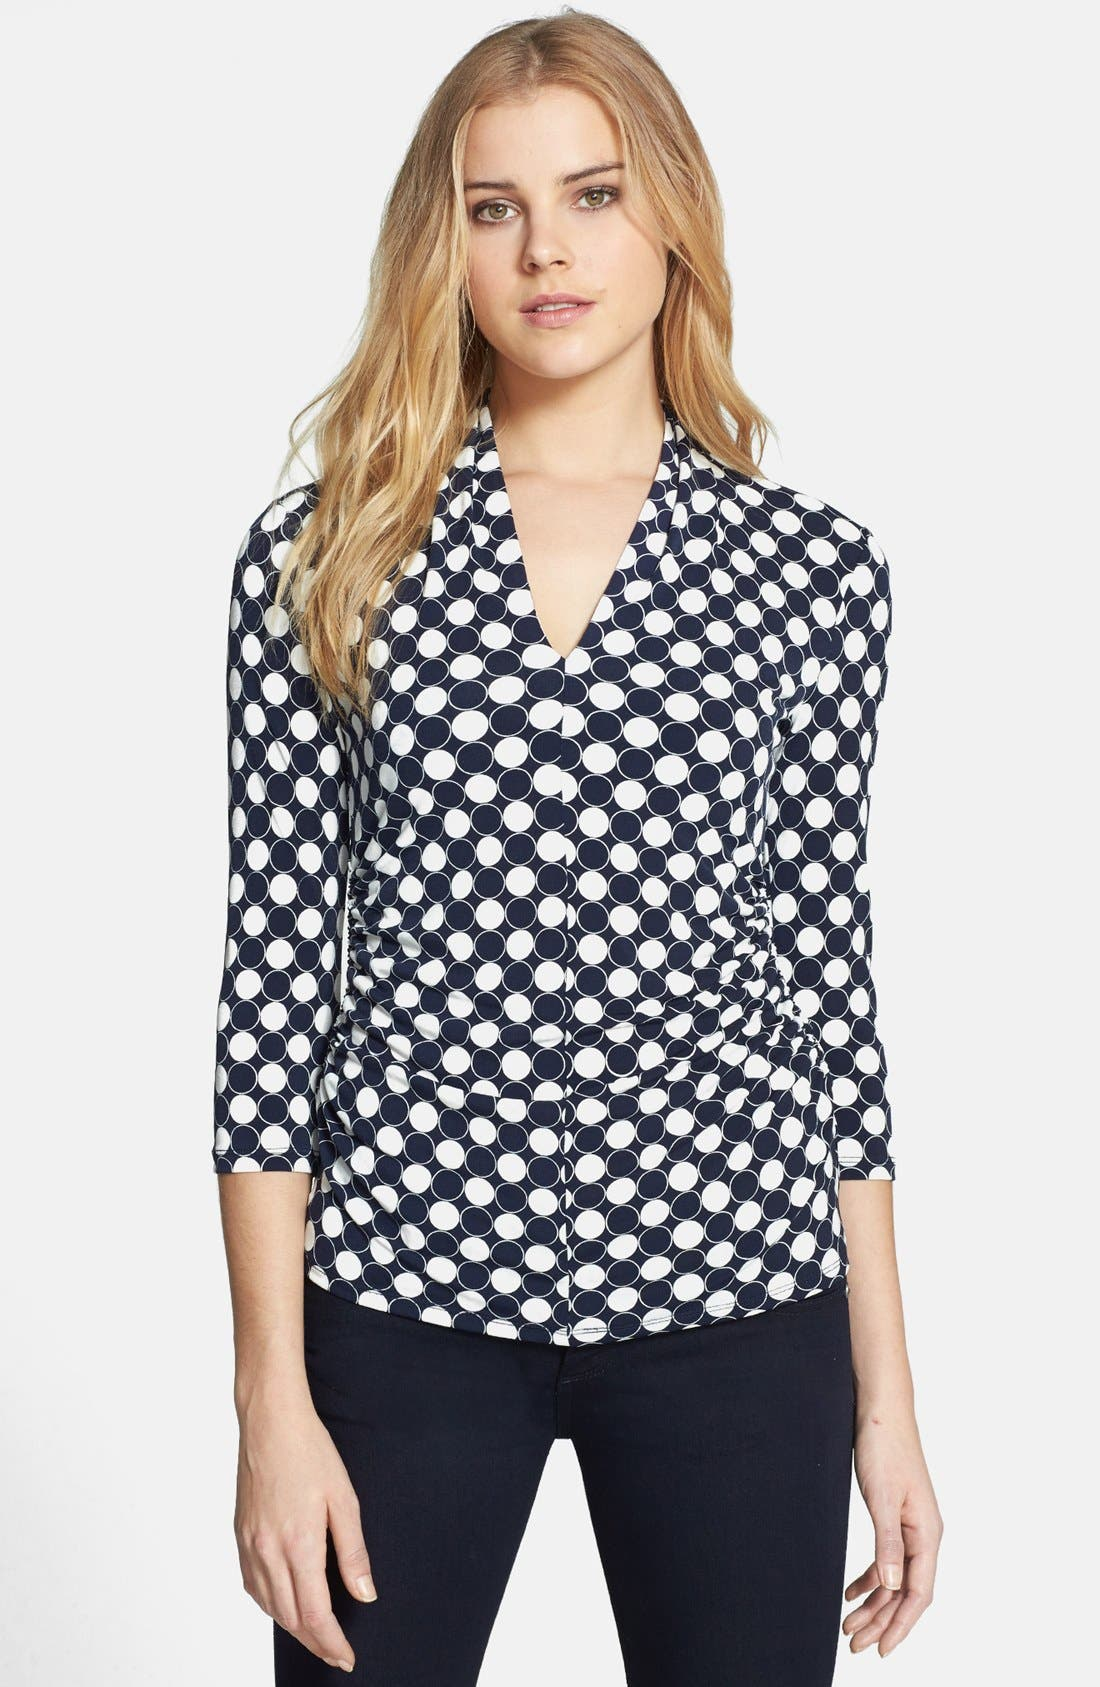 Main Image - Vince Camuto 'Retro Dots' V-Neck Top (Regular & Petite)